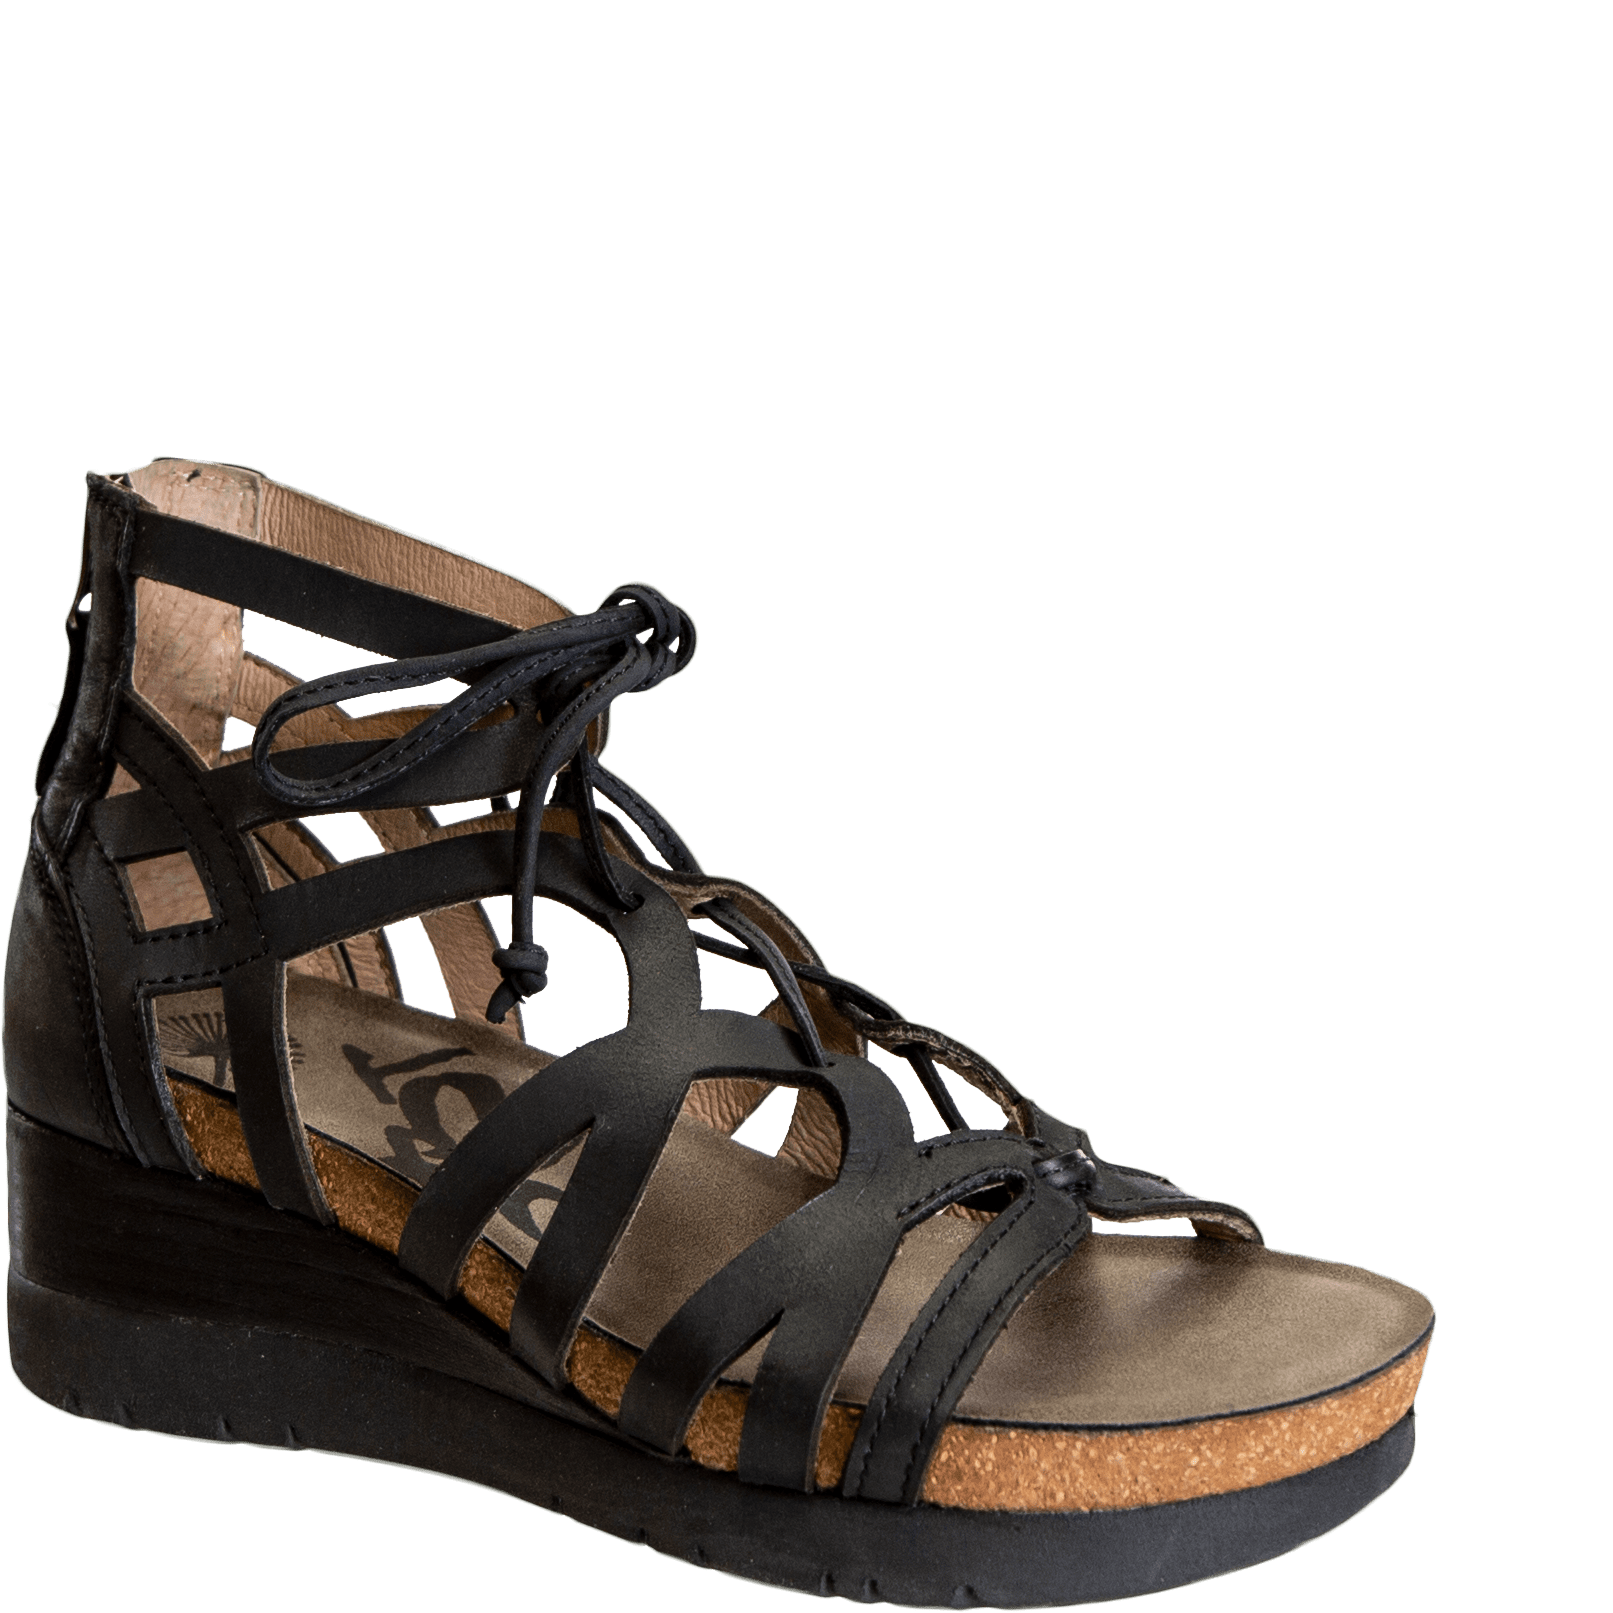 ESCAPADE in BLACK Wedge Sandals